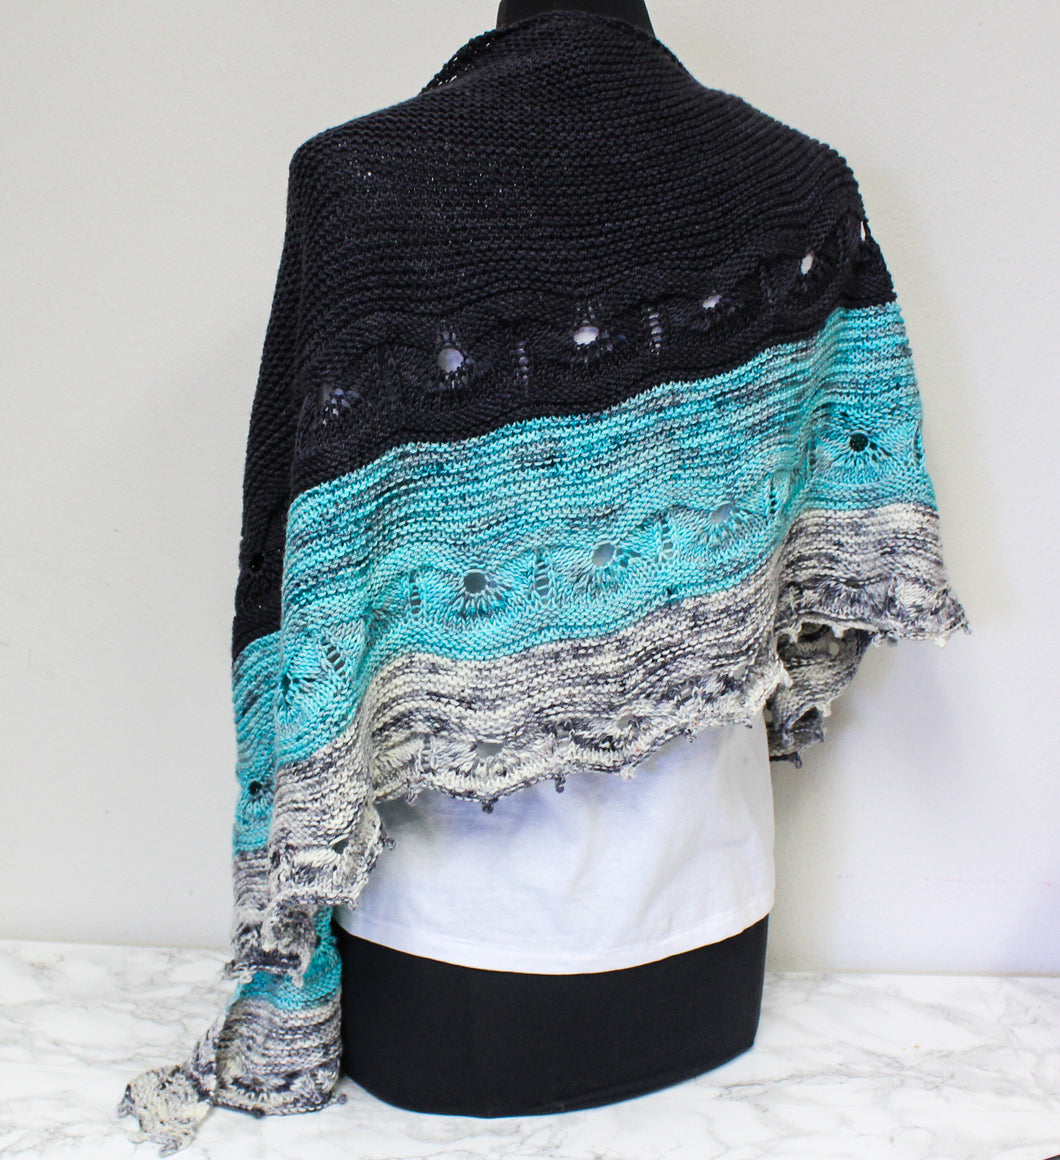 Odyssey Shawl by Joji Locatelli Knitting Kit